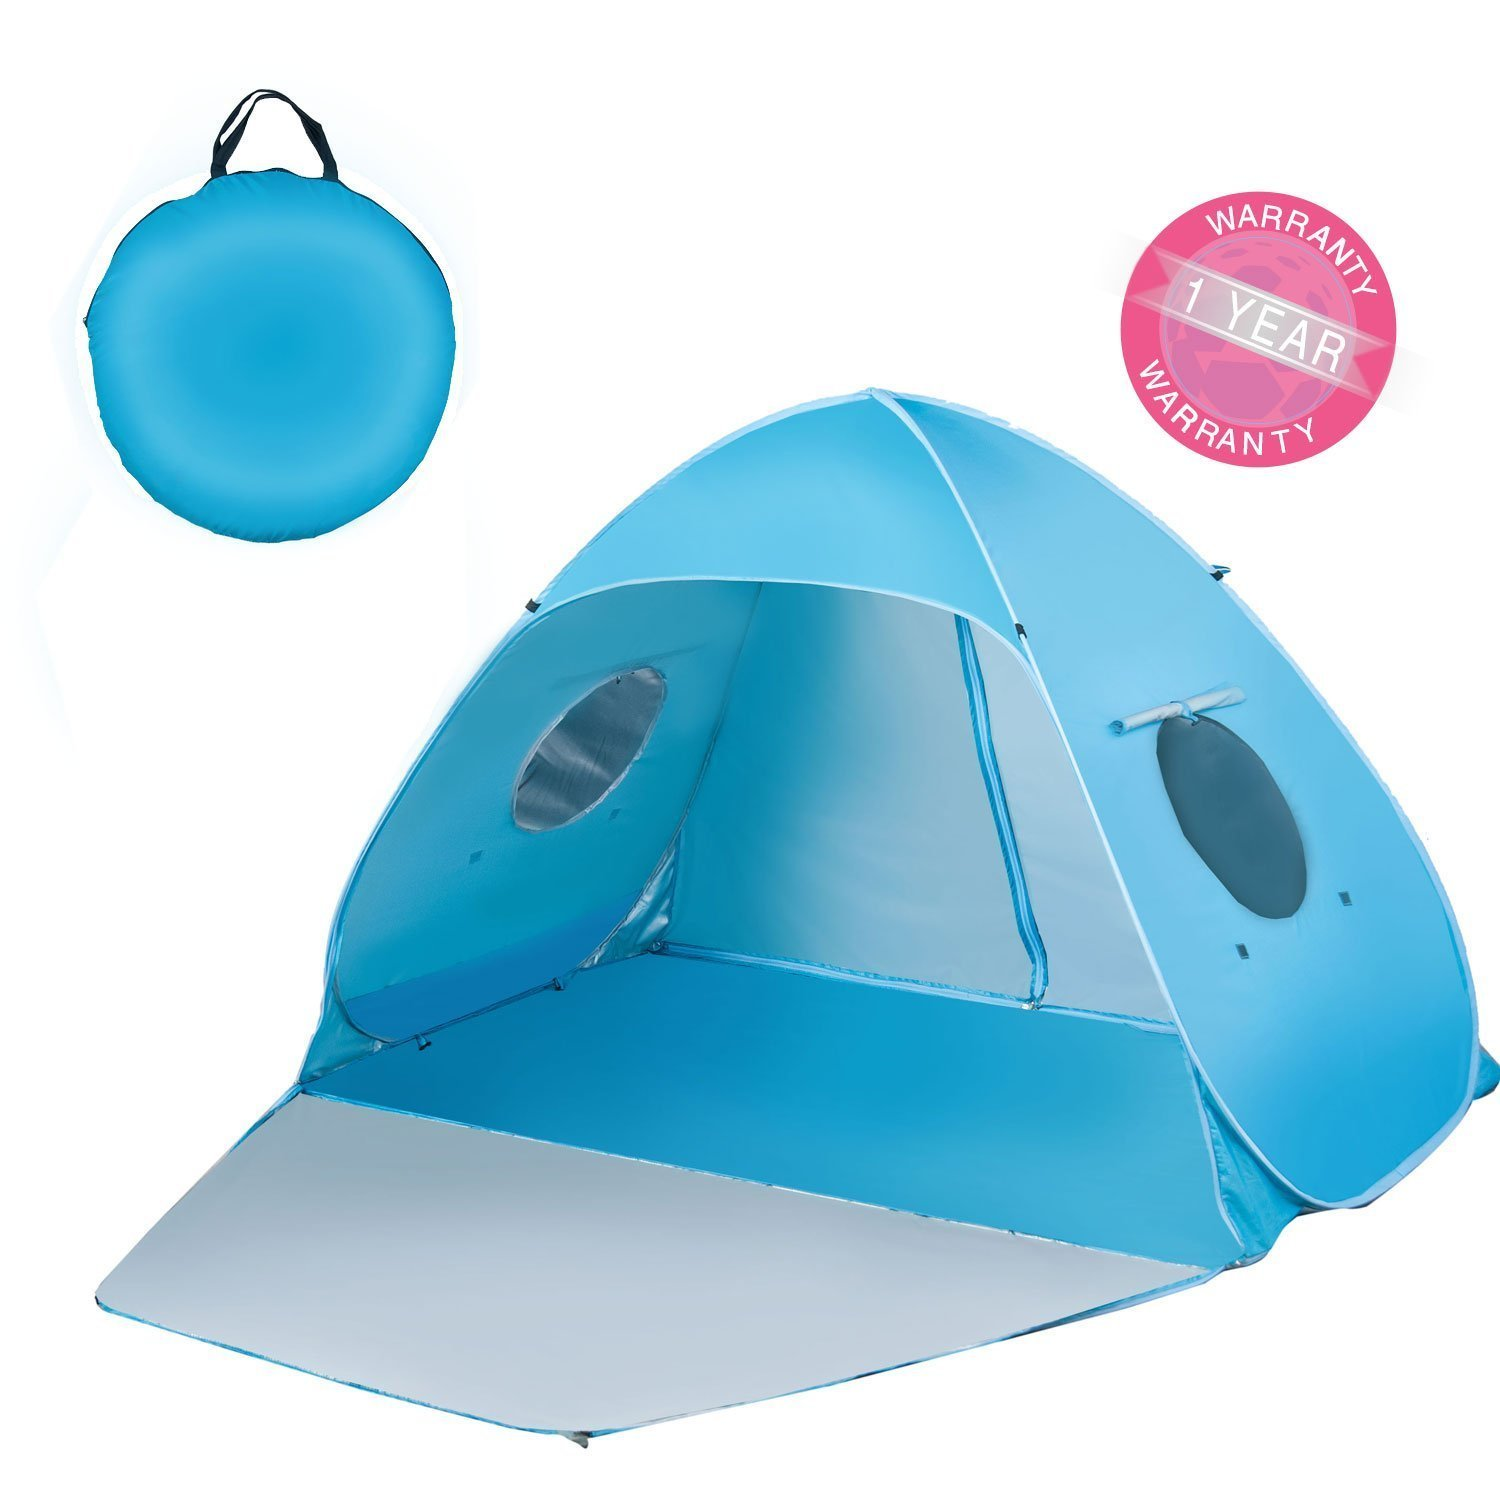 iCorer Extra Large Pop Up 3-Person Beach Tent, Light Blue